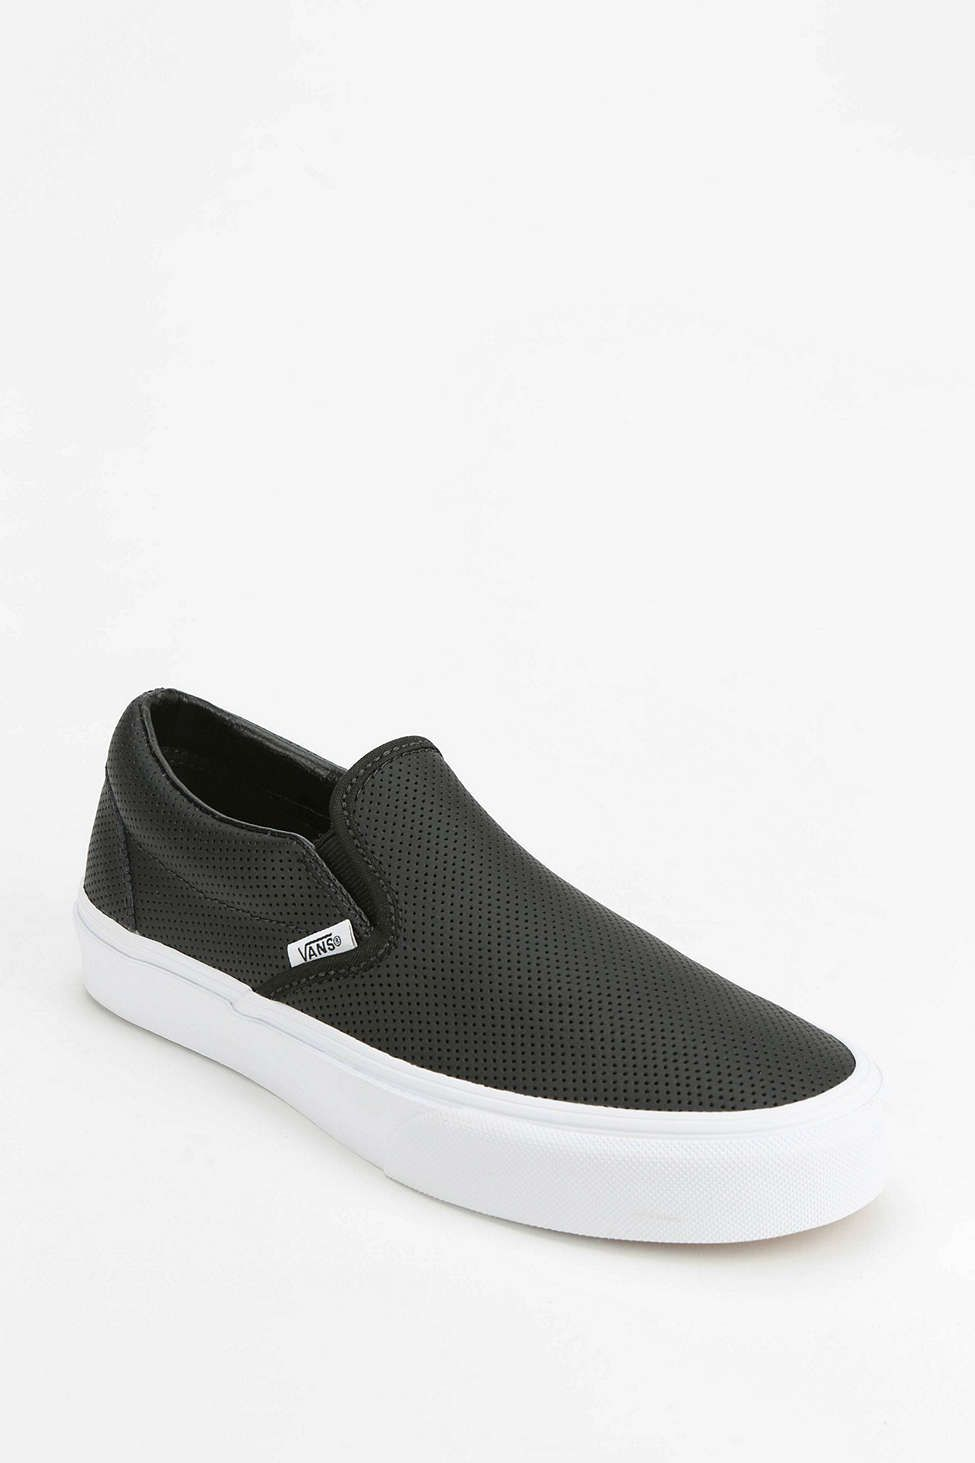 c1df3d00cb Vans Perforated Leather Womens Slip-On Sneaker - Urban Outfitters